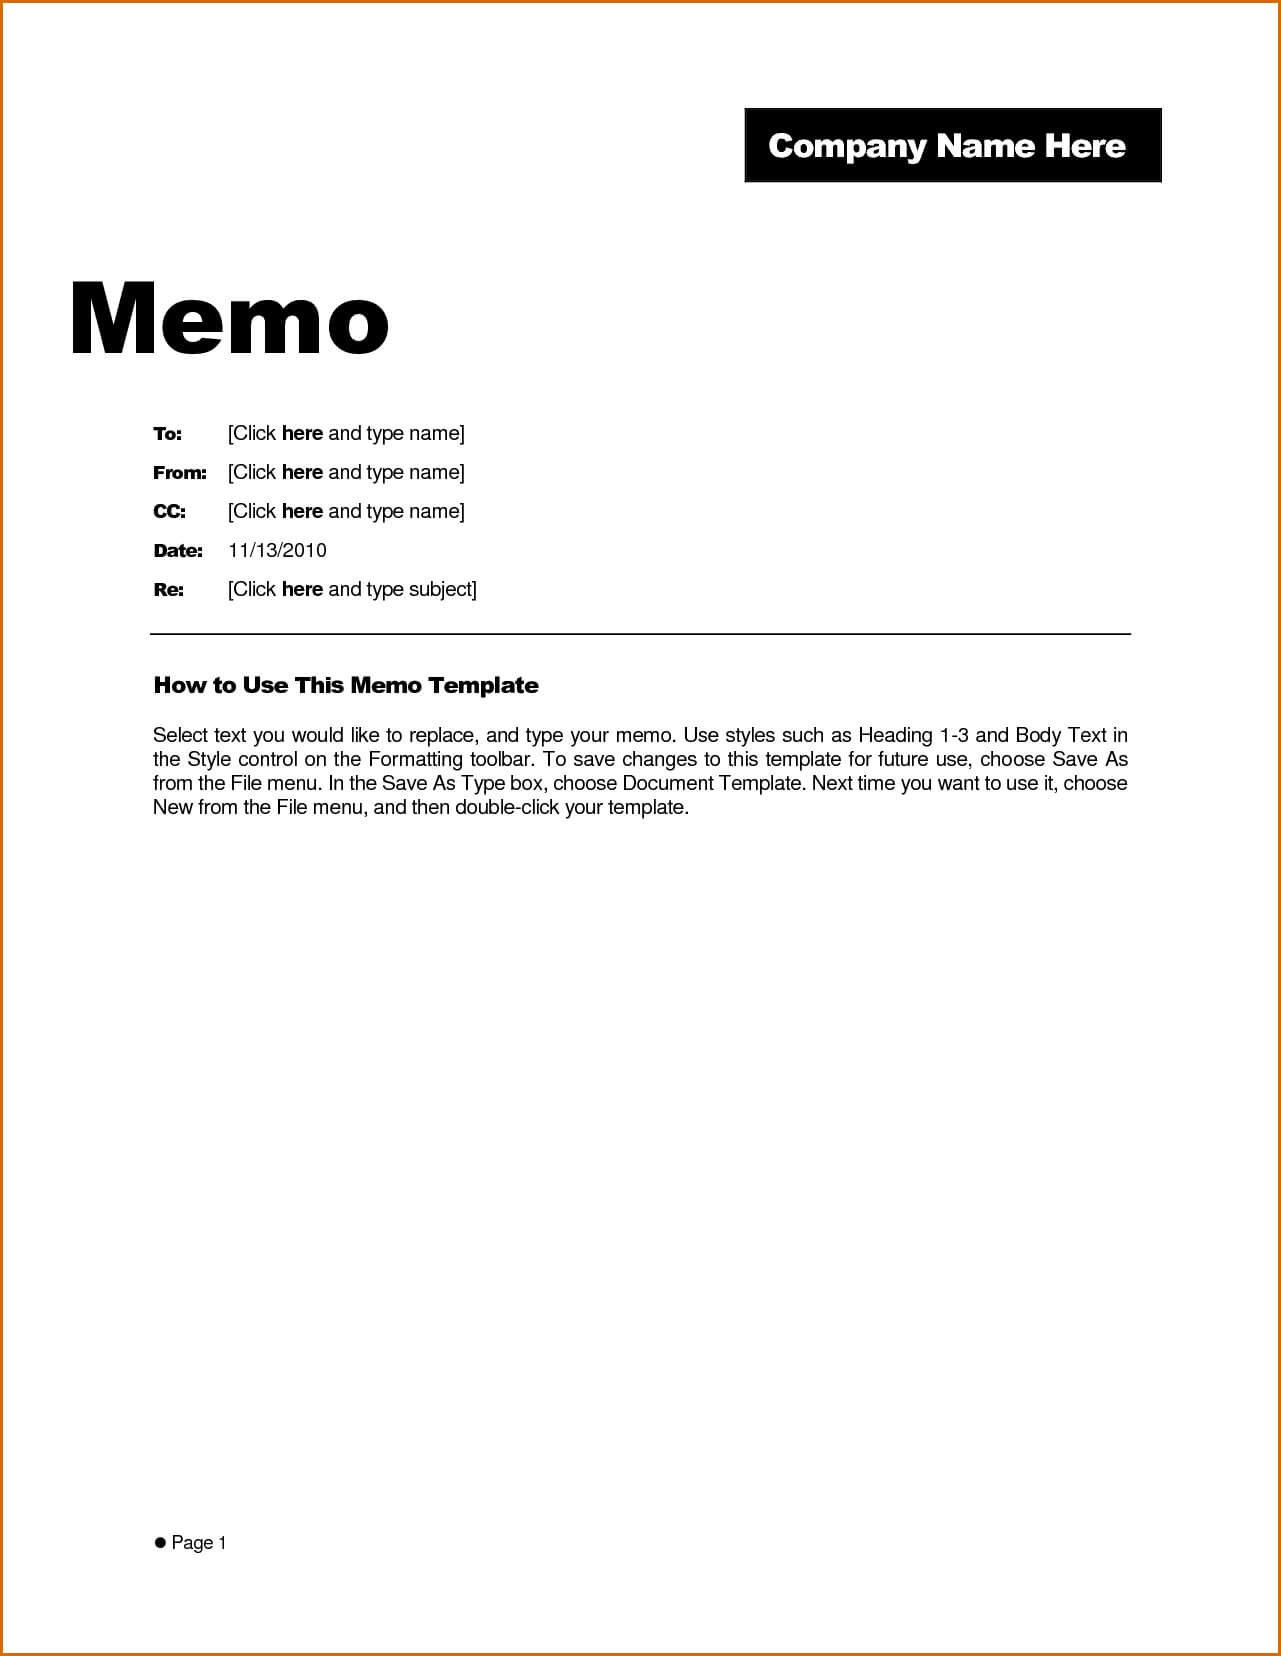 017 Memo Template Word Ideas Templates Shocking For Throughout Memo Template Word 2013